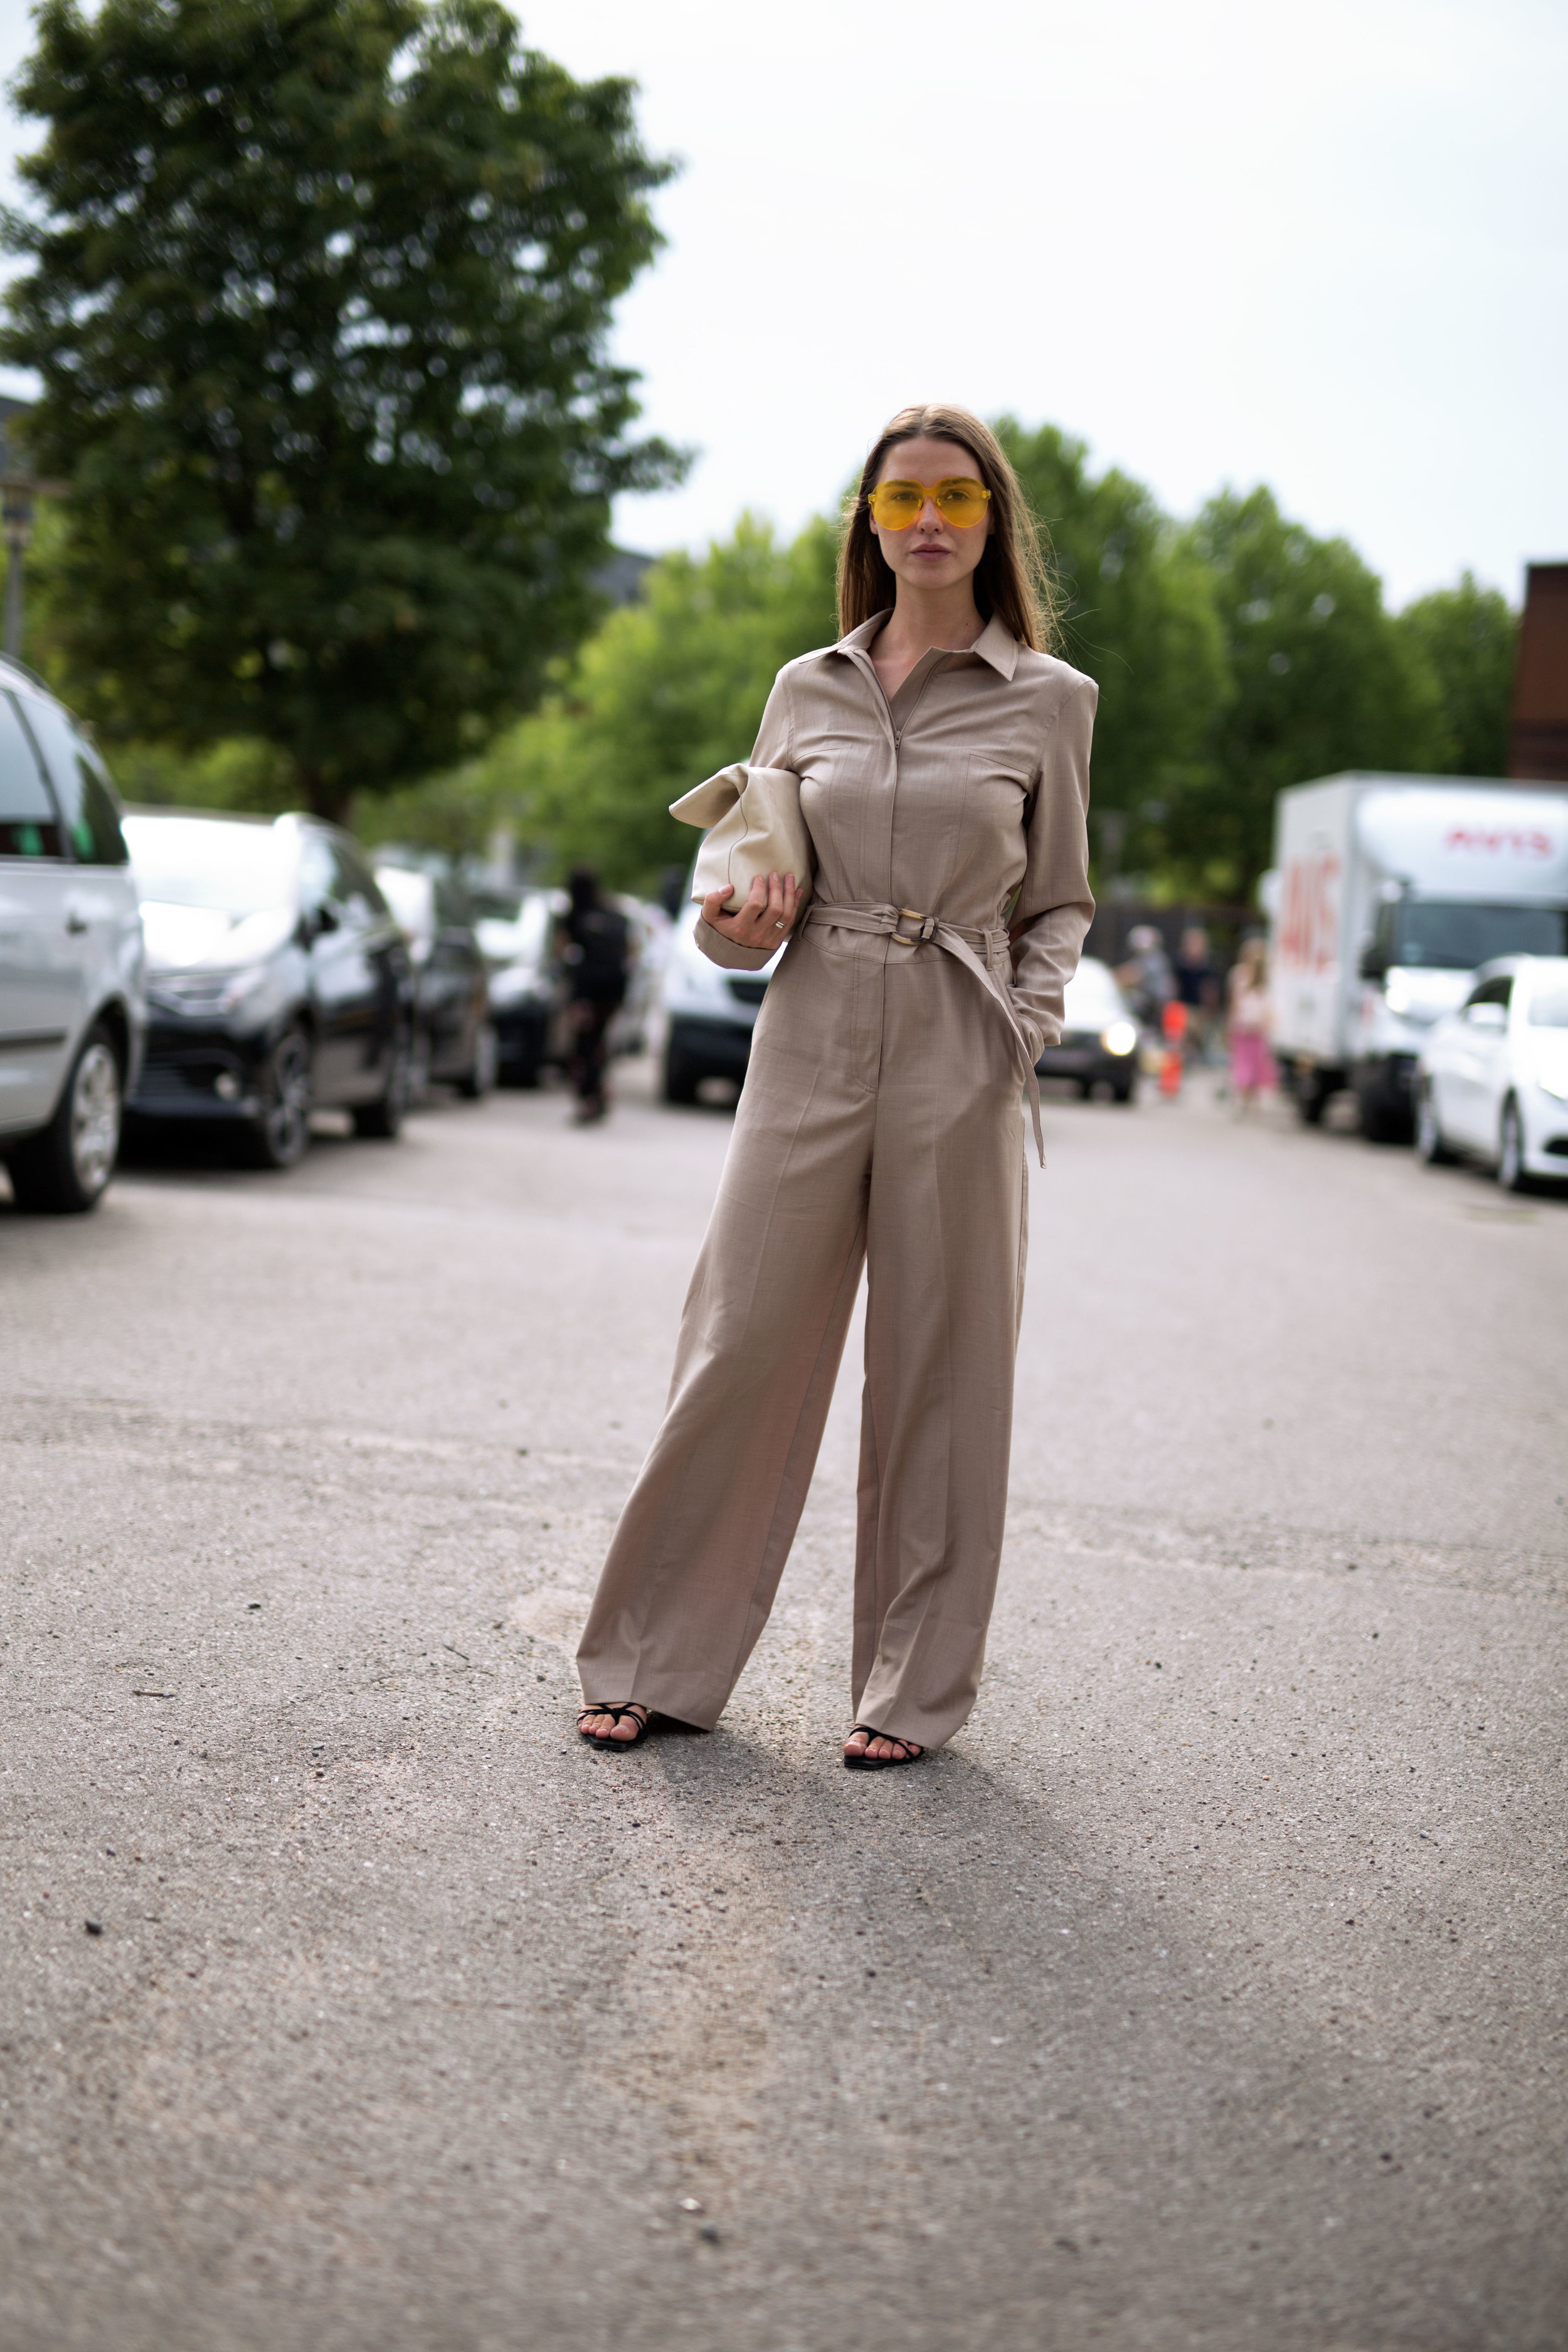 TheStreetland_Copenhagen_Fashion_Week_SS19_35.jpg